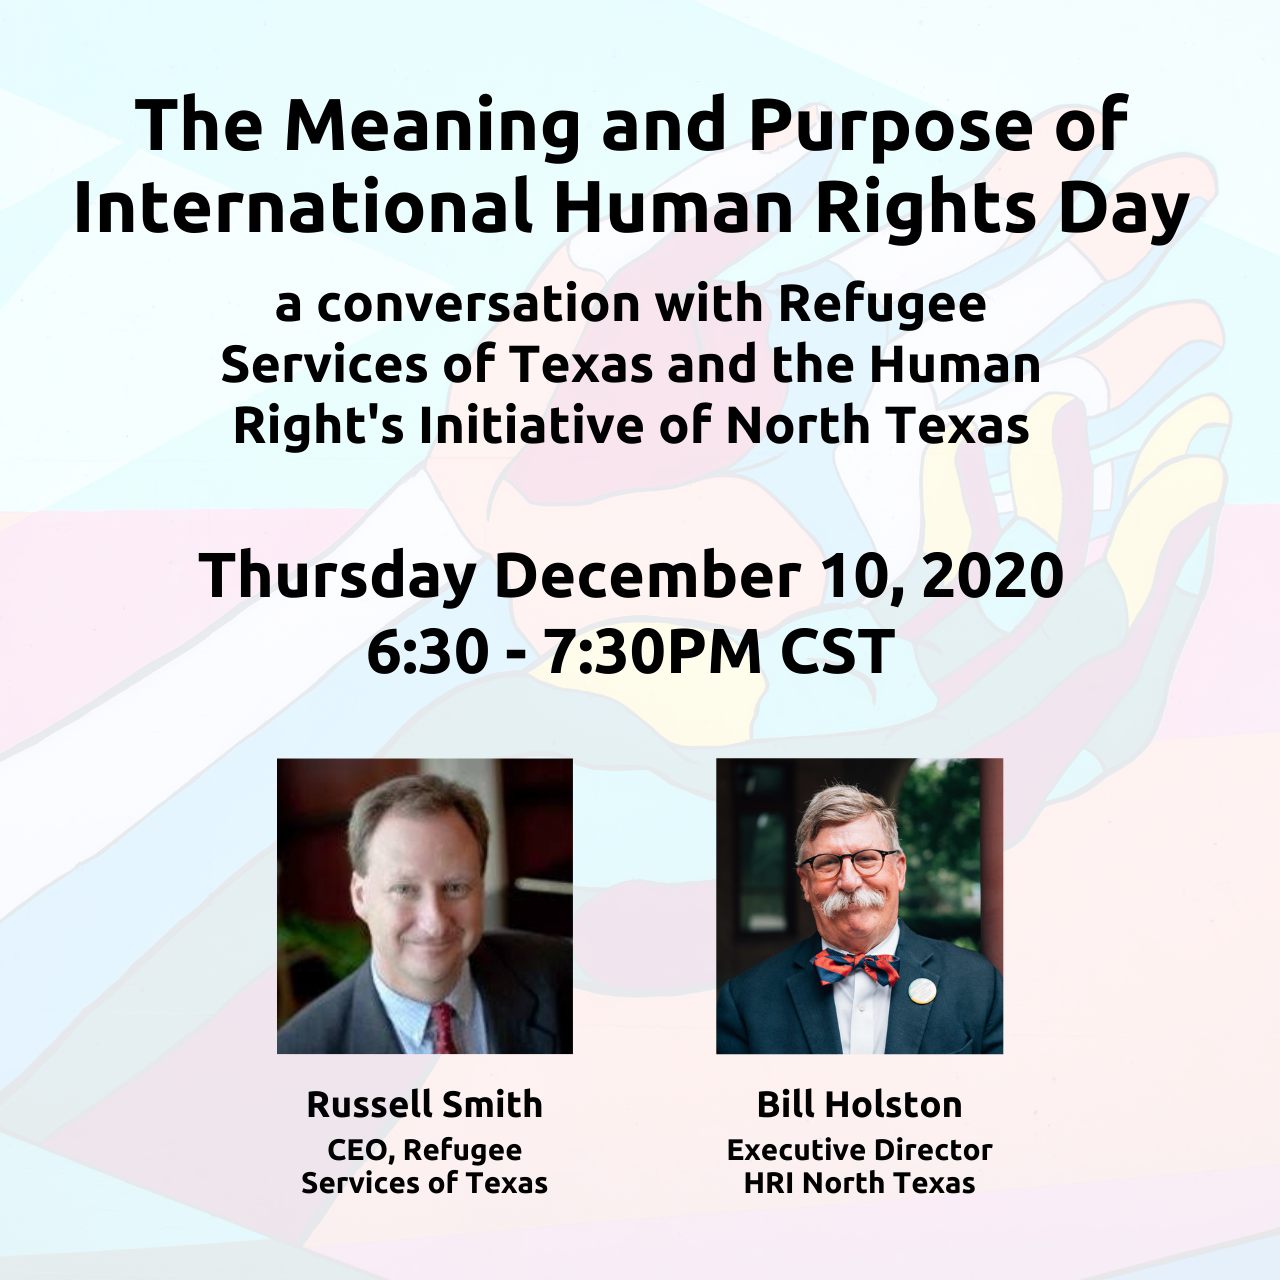 The Meaning and Purpose of International Human Rights Day: a conversation with RST & HRI of North Texas